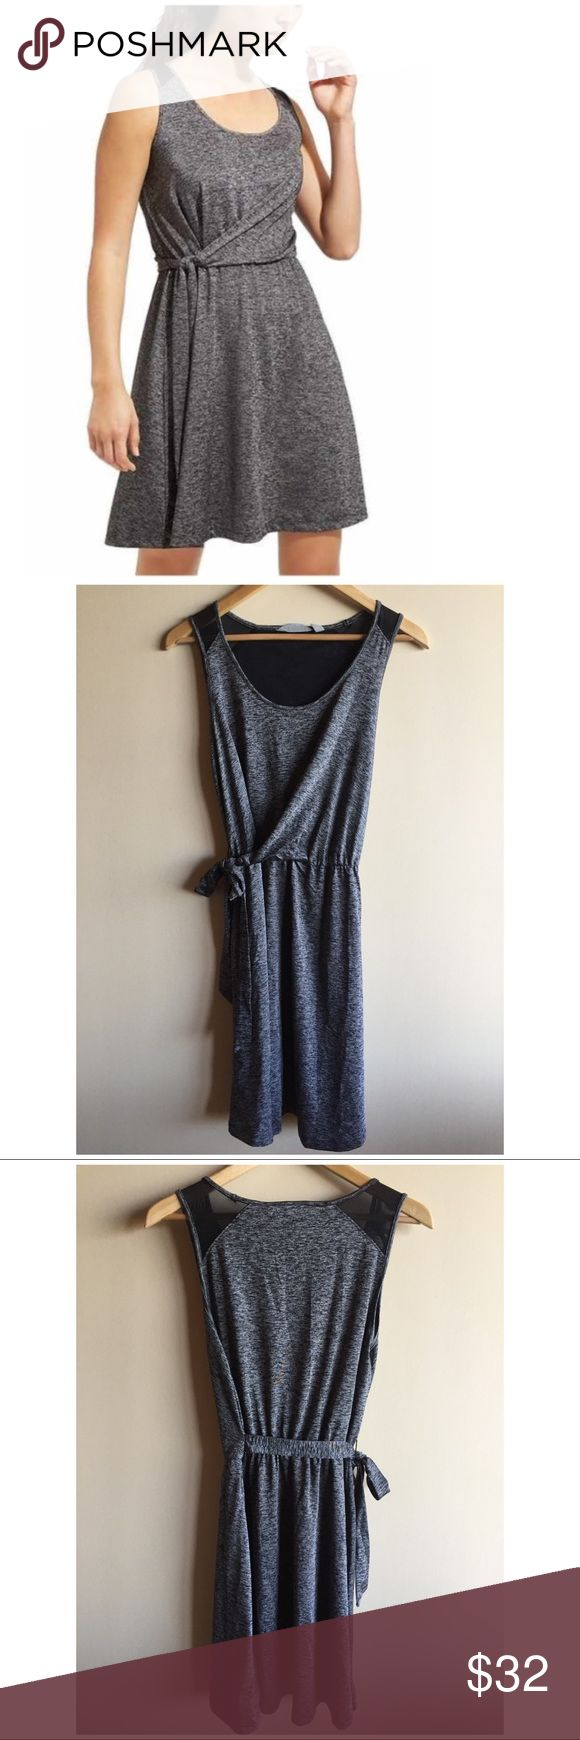 "Athleta Sweet Saturday wrap dress in grey Heathered charcoal grey faux wrap dress by Athleta in excellent condition! ""Designed for travel adventures, this flattering side-tie dress is made from a soft, packable jersey that's wicking so it works great wherever you take it. BRA-FRIENDLY. Wider straps conceal any and every kind of bra strap. Adjustable tie waist. Sporty mesh ventilation lets sweat escape."" Athleta Dresses"